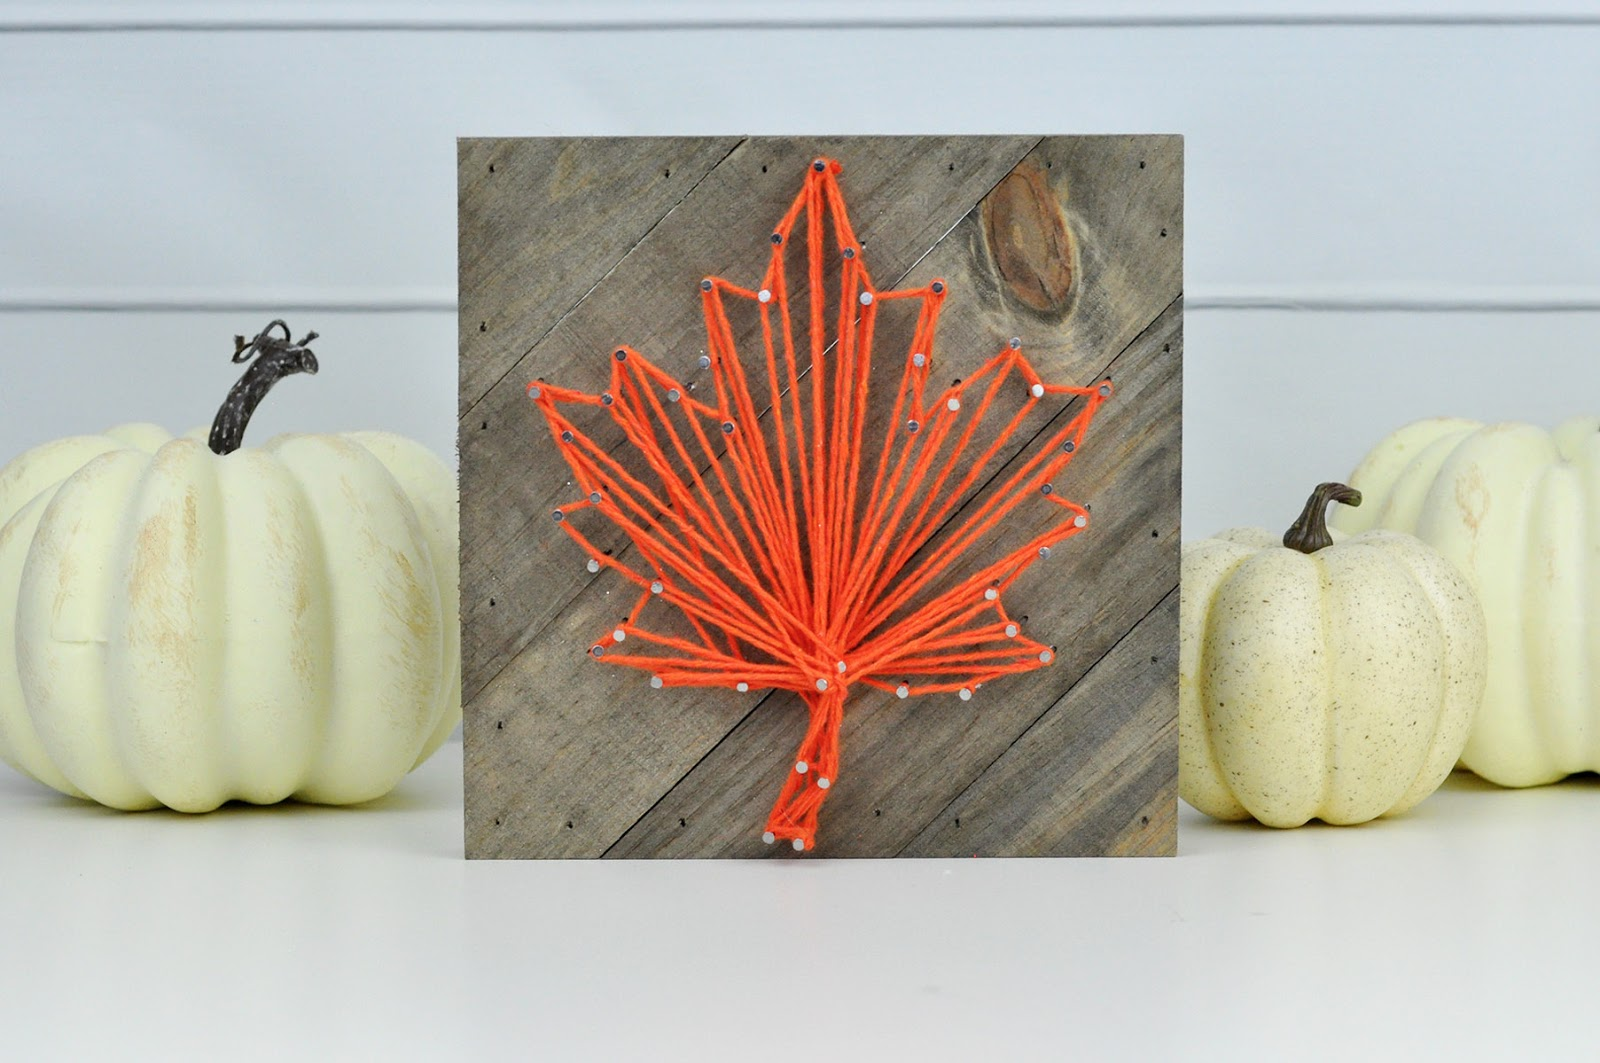 Fall String Art Frame tutorial by Jen Gallacher for Jillibean Soup. #stringart #jillibeansoup #jengallacher #autumncraft #fallstringart